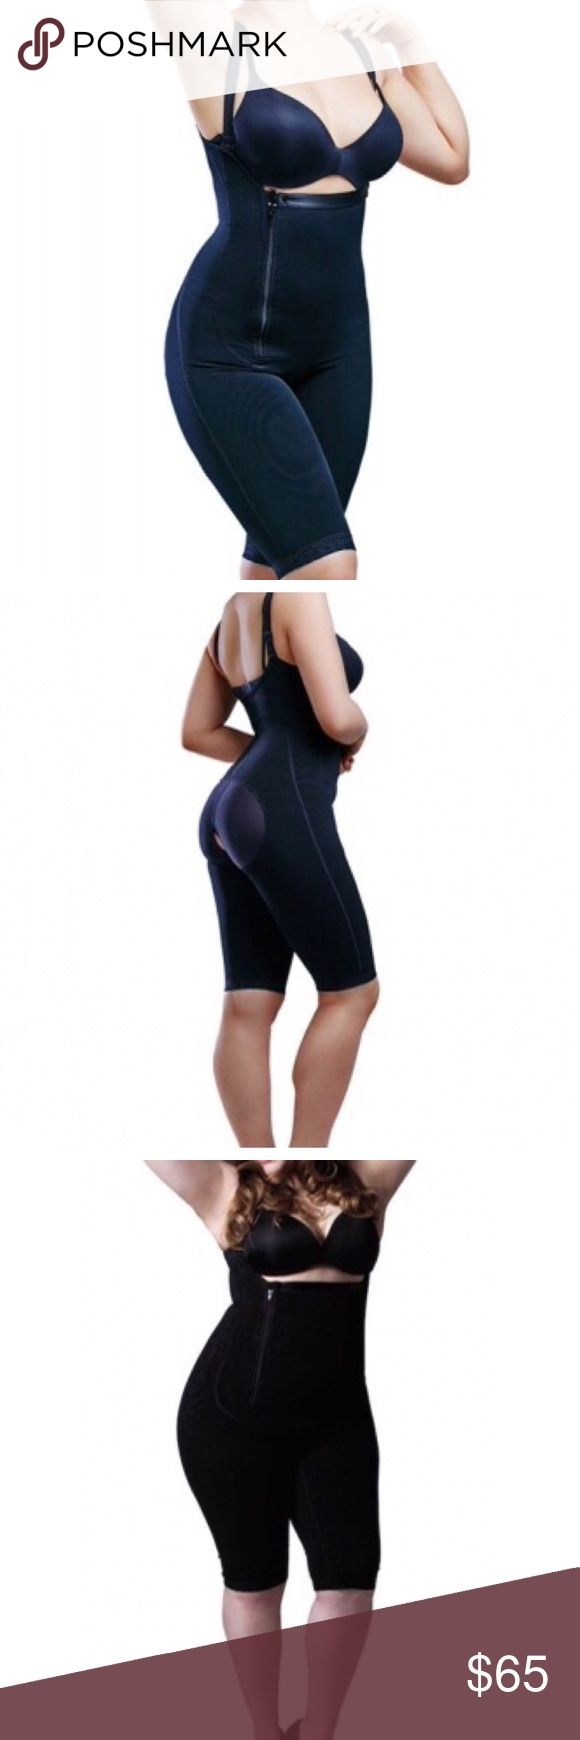 Full Body Shaper Tummy and Thigh Control Plus Size Full Body Garment Shaper with zipper closure and open crotch to use the bathroom. Garment runs true to size with stretch. Please feel free to ask any questions. Intimates & Sleepwear Shapewear